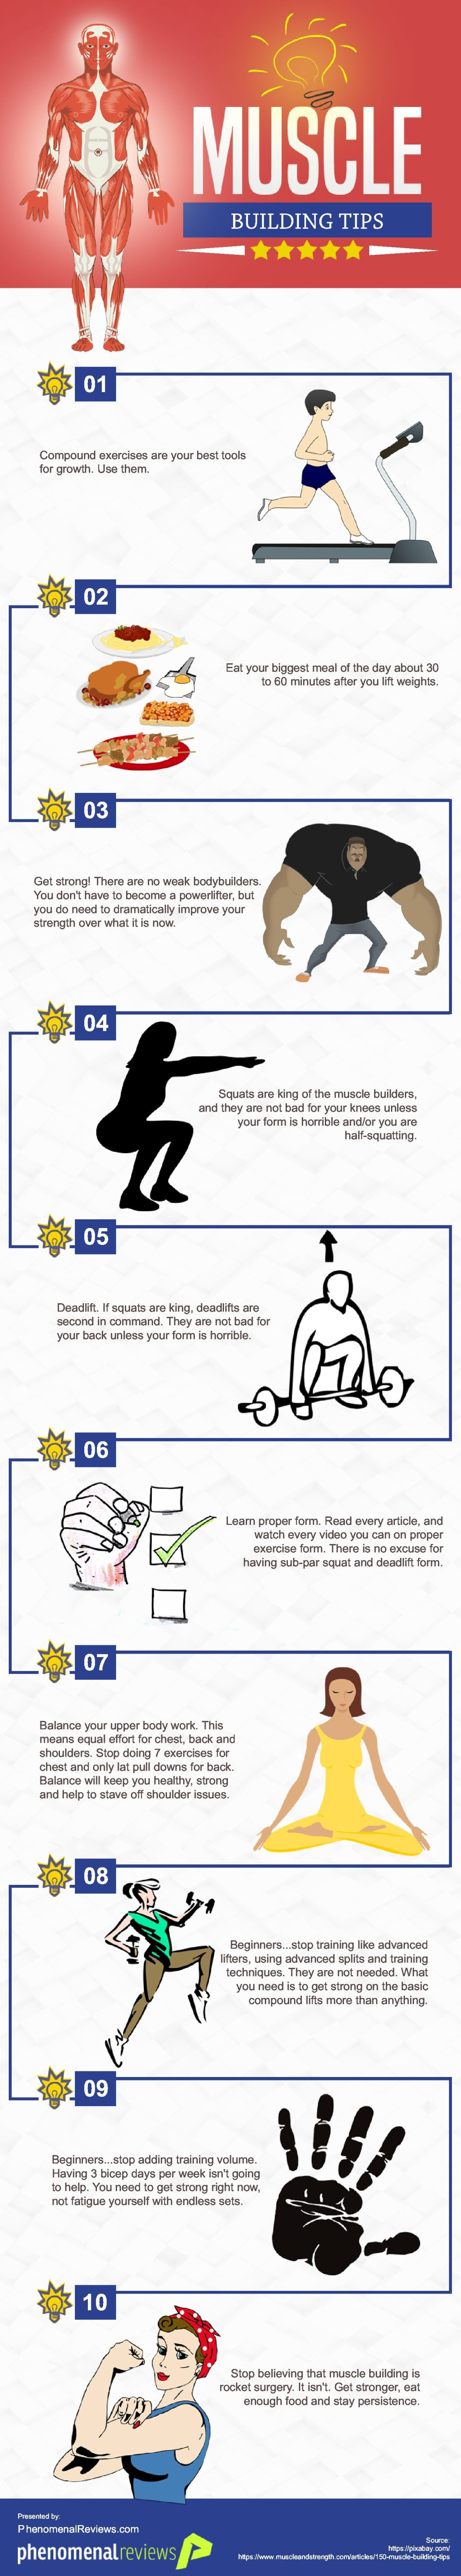 Muscle Building Hacks - Infographic